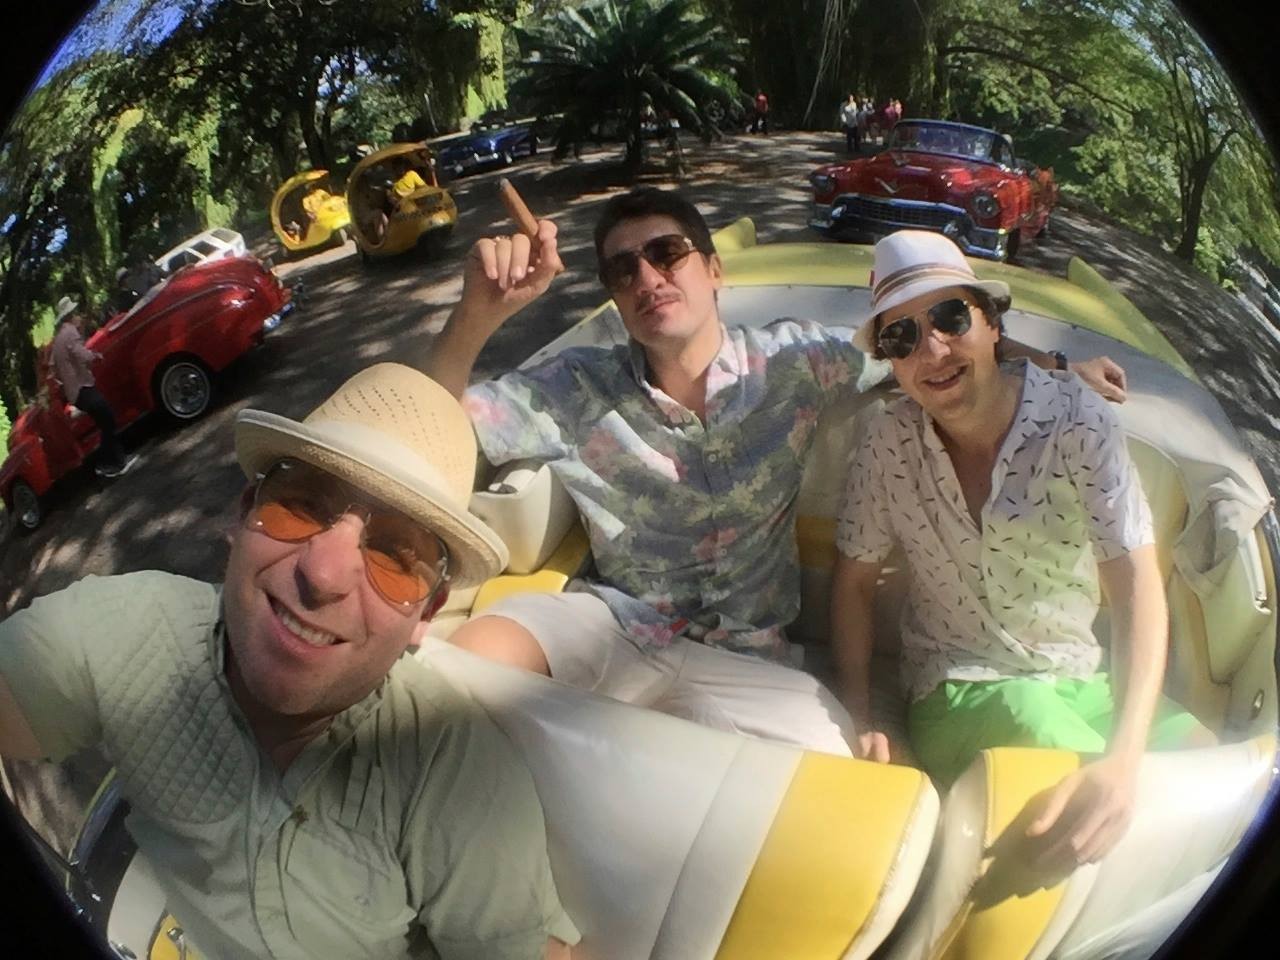 Fear and loathing as the boys cruise through the heavily wooded parks where we found evidence of Santaria rituals in the public parks.